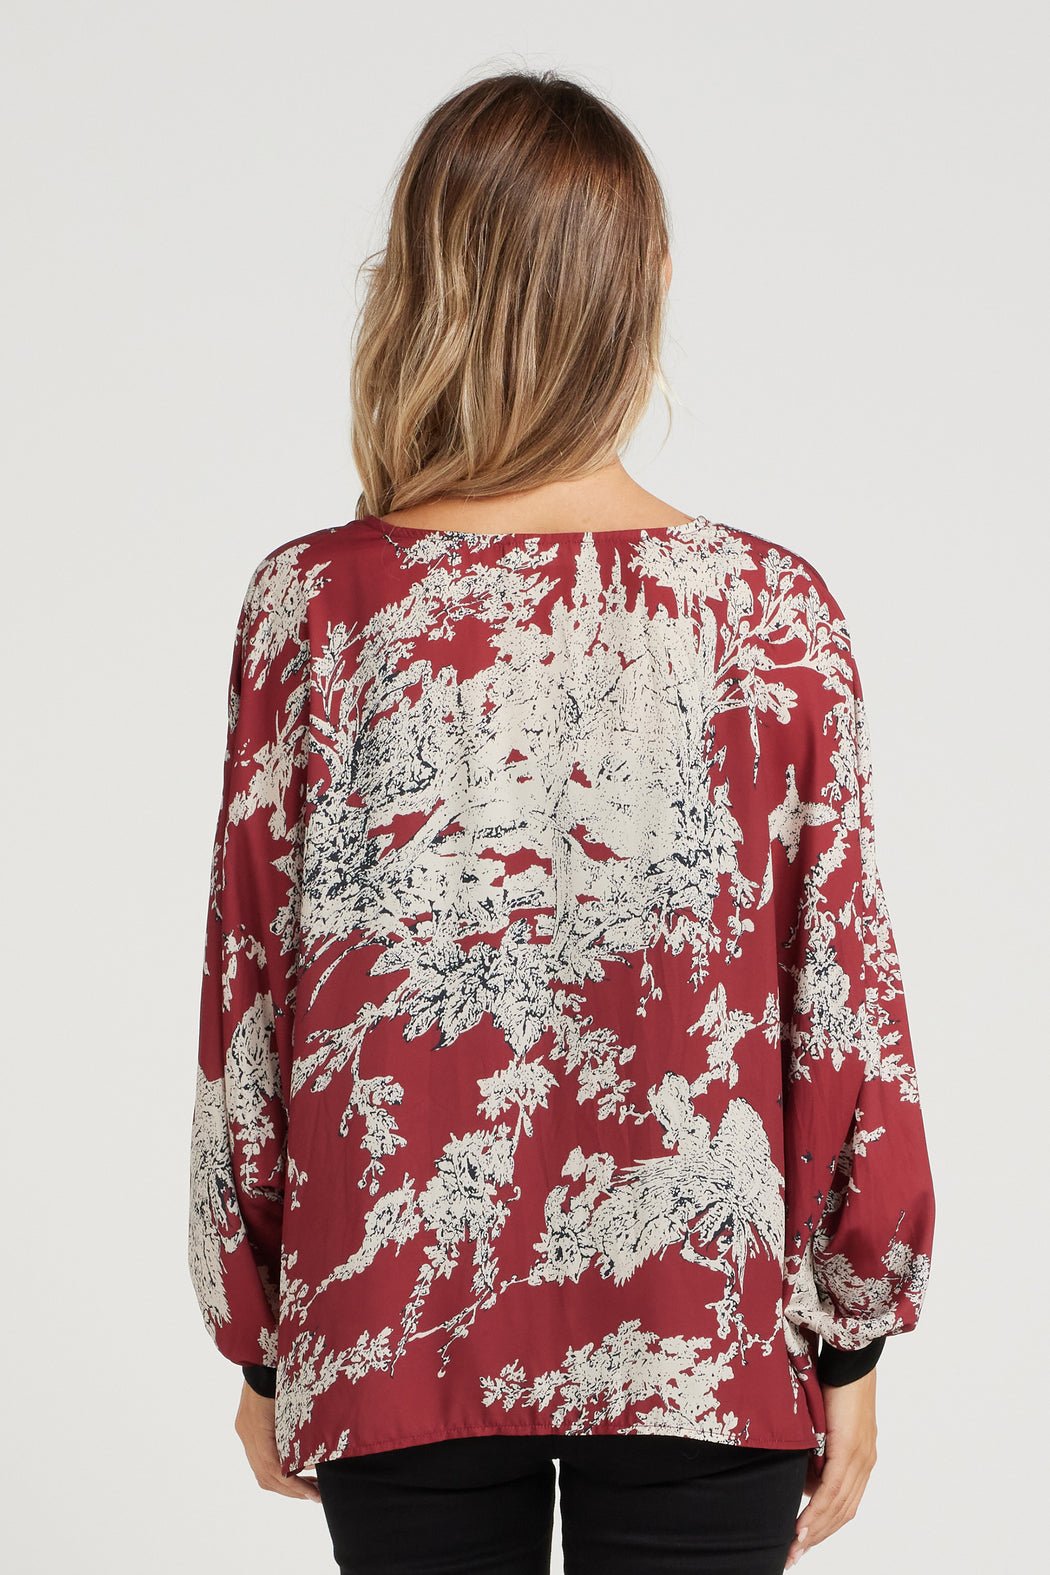 Et Alia Bishop Top - Red Antique | Shop at Wallace and Gibbs, Arrowtown